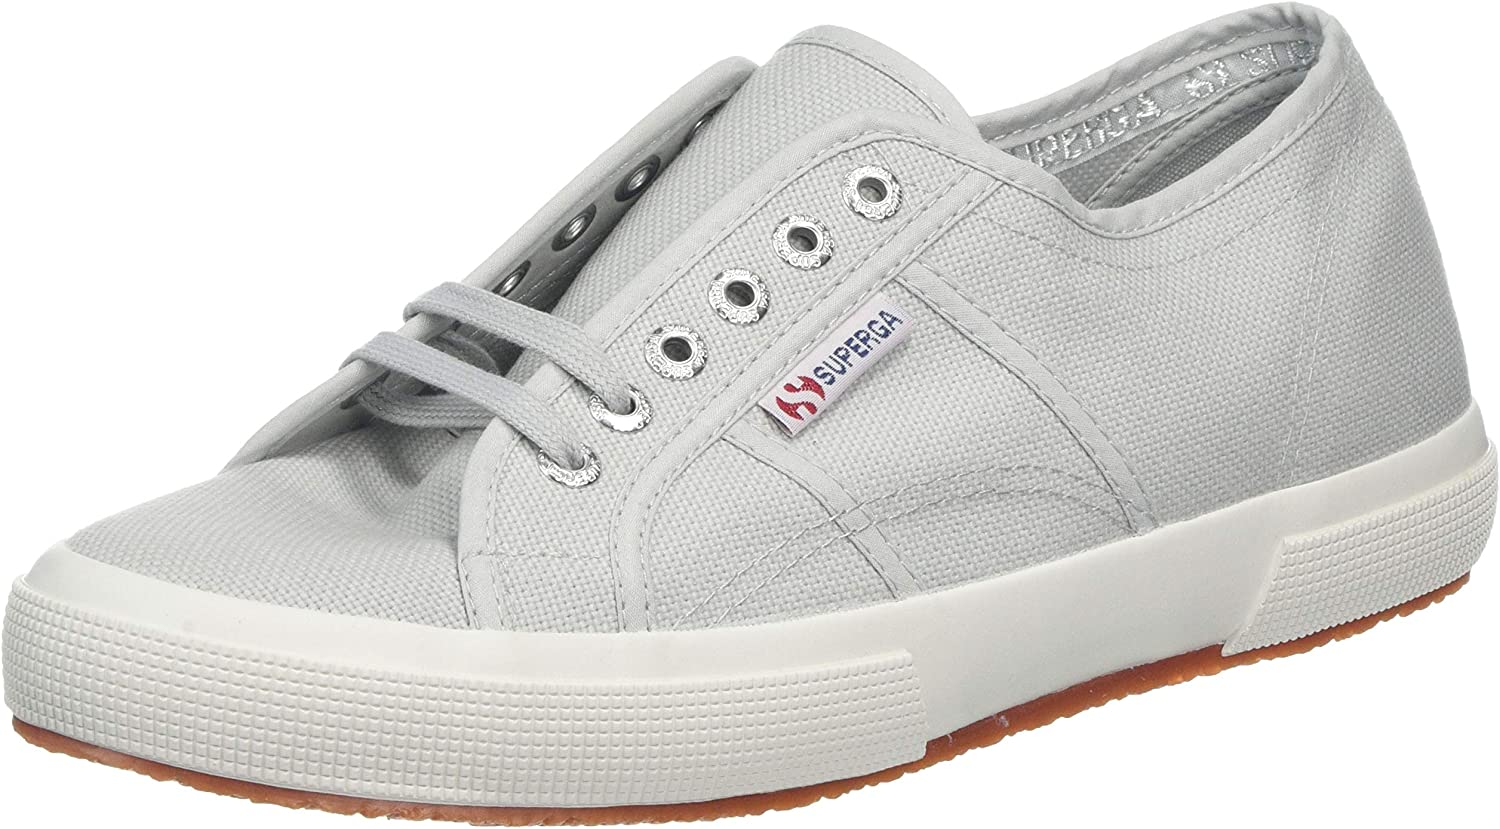 Superga Unisex Adults' 2750-plus Cotu Trainers